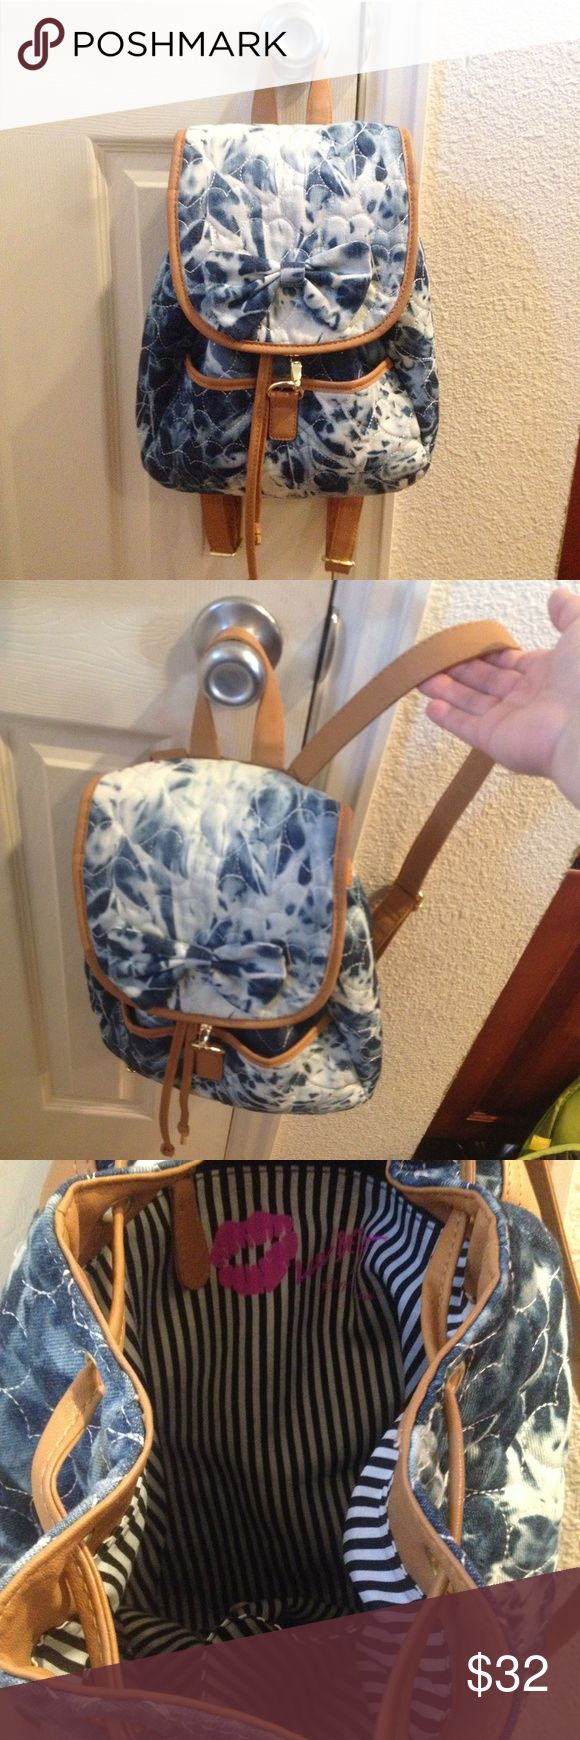 Betsey Johnson Tie Dye Heart Backpack Luv Betsey Tie dye denim backpack with hearts stitched throughout and a bow. Almond colored leather and gold hardware. Black and white striped interior. This bag is amazing! Used very lightly a few times Betsey Johnson Bags Backpacks